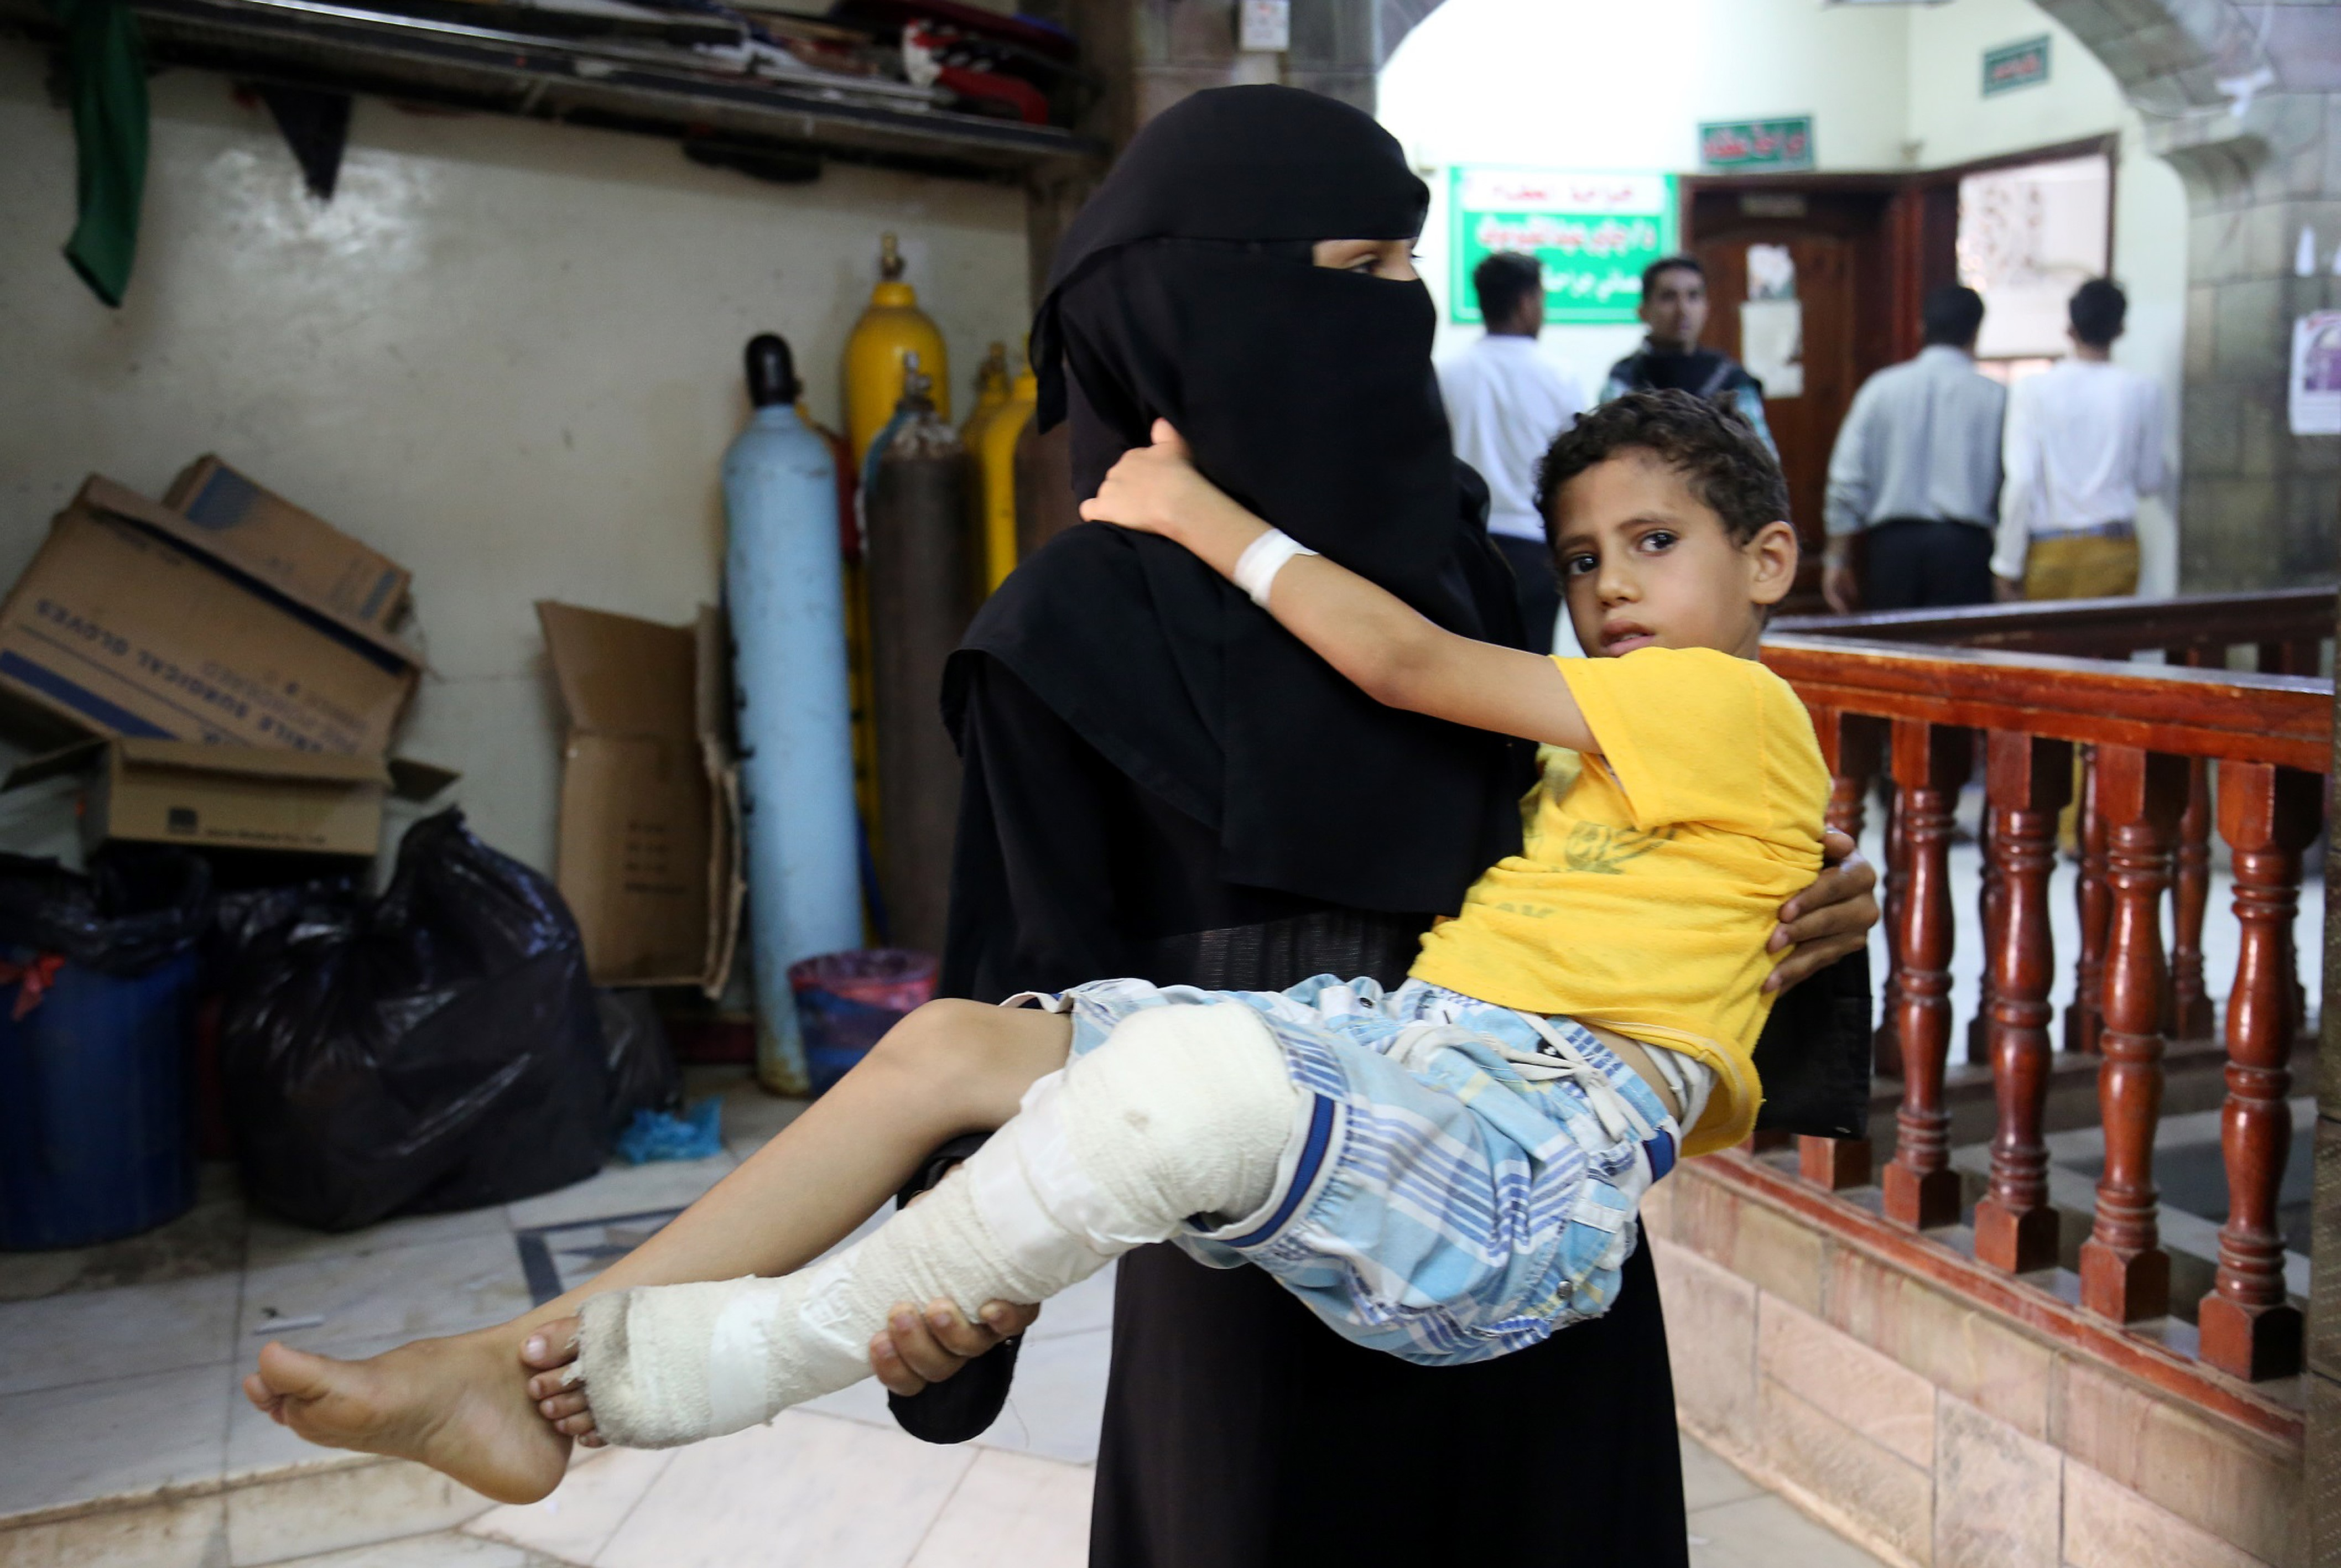 A woman carries a boy who has been injured in a Shiite Houthi attack, targeting residential areas, to es-Sevra hospital, in Taiz, Yemen, on June 4, 2016.